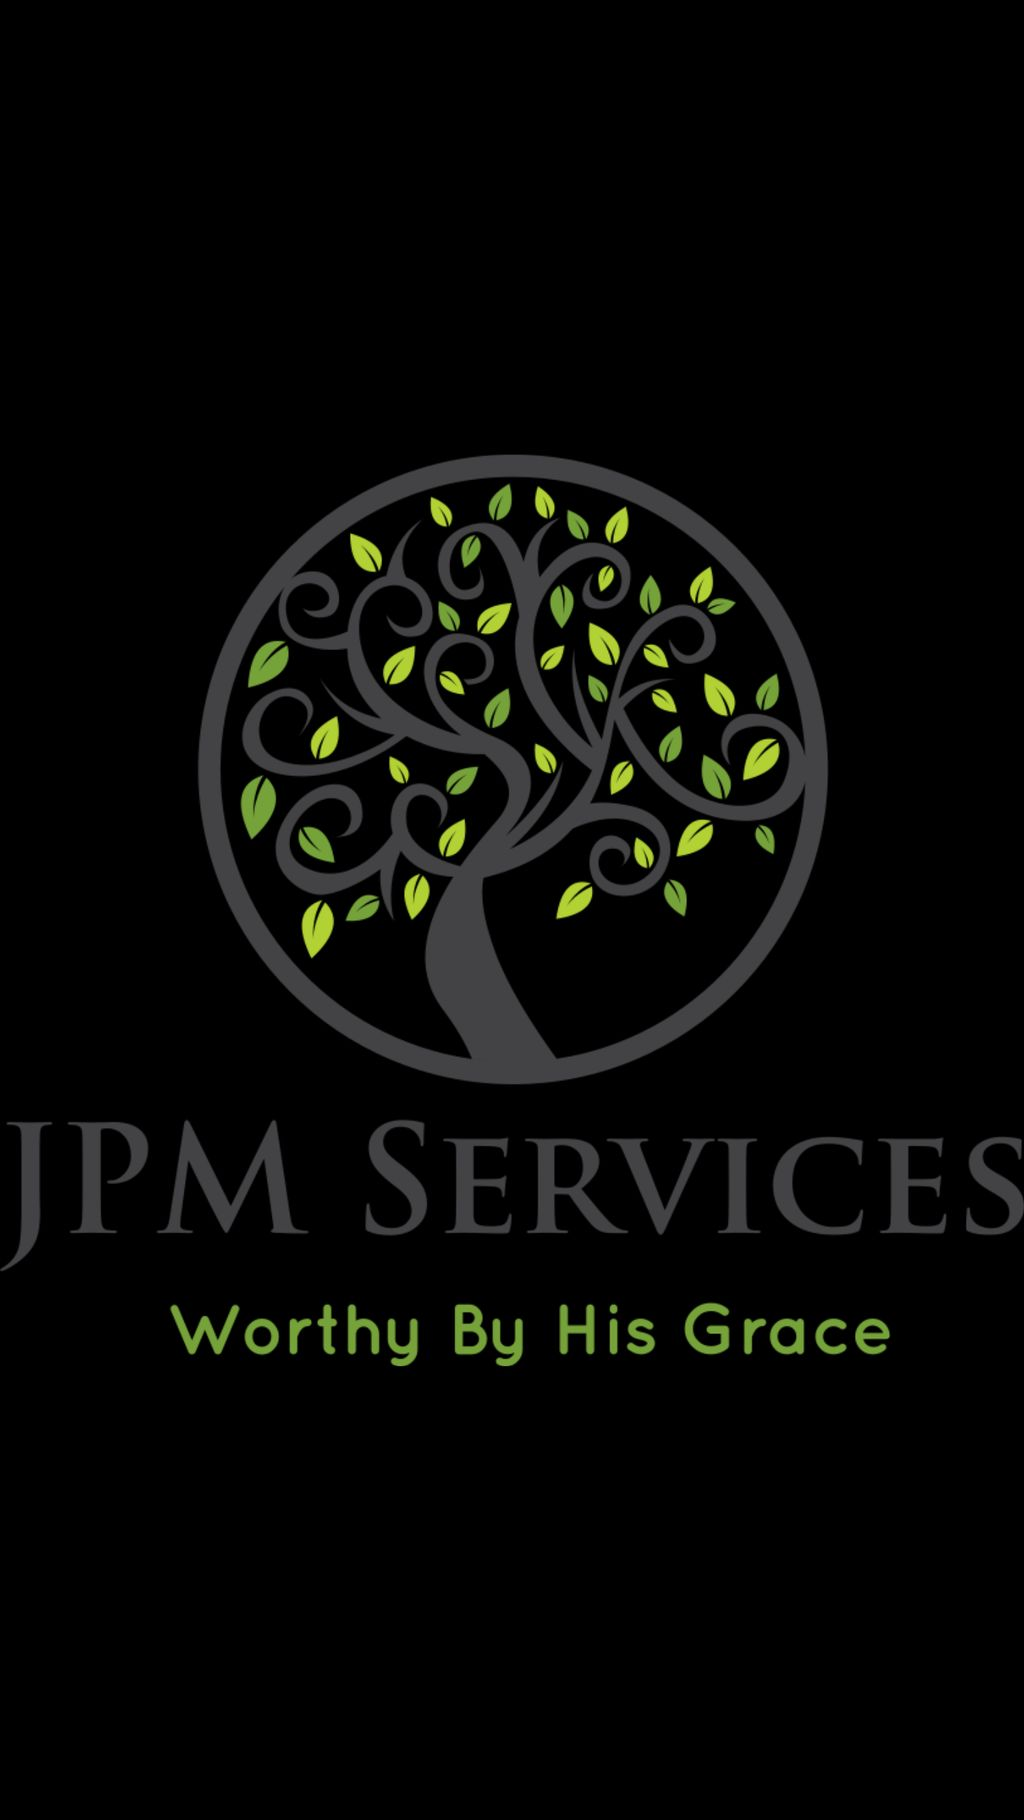 JPM Services